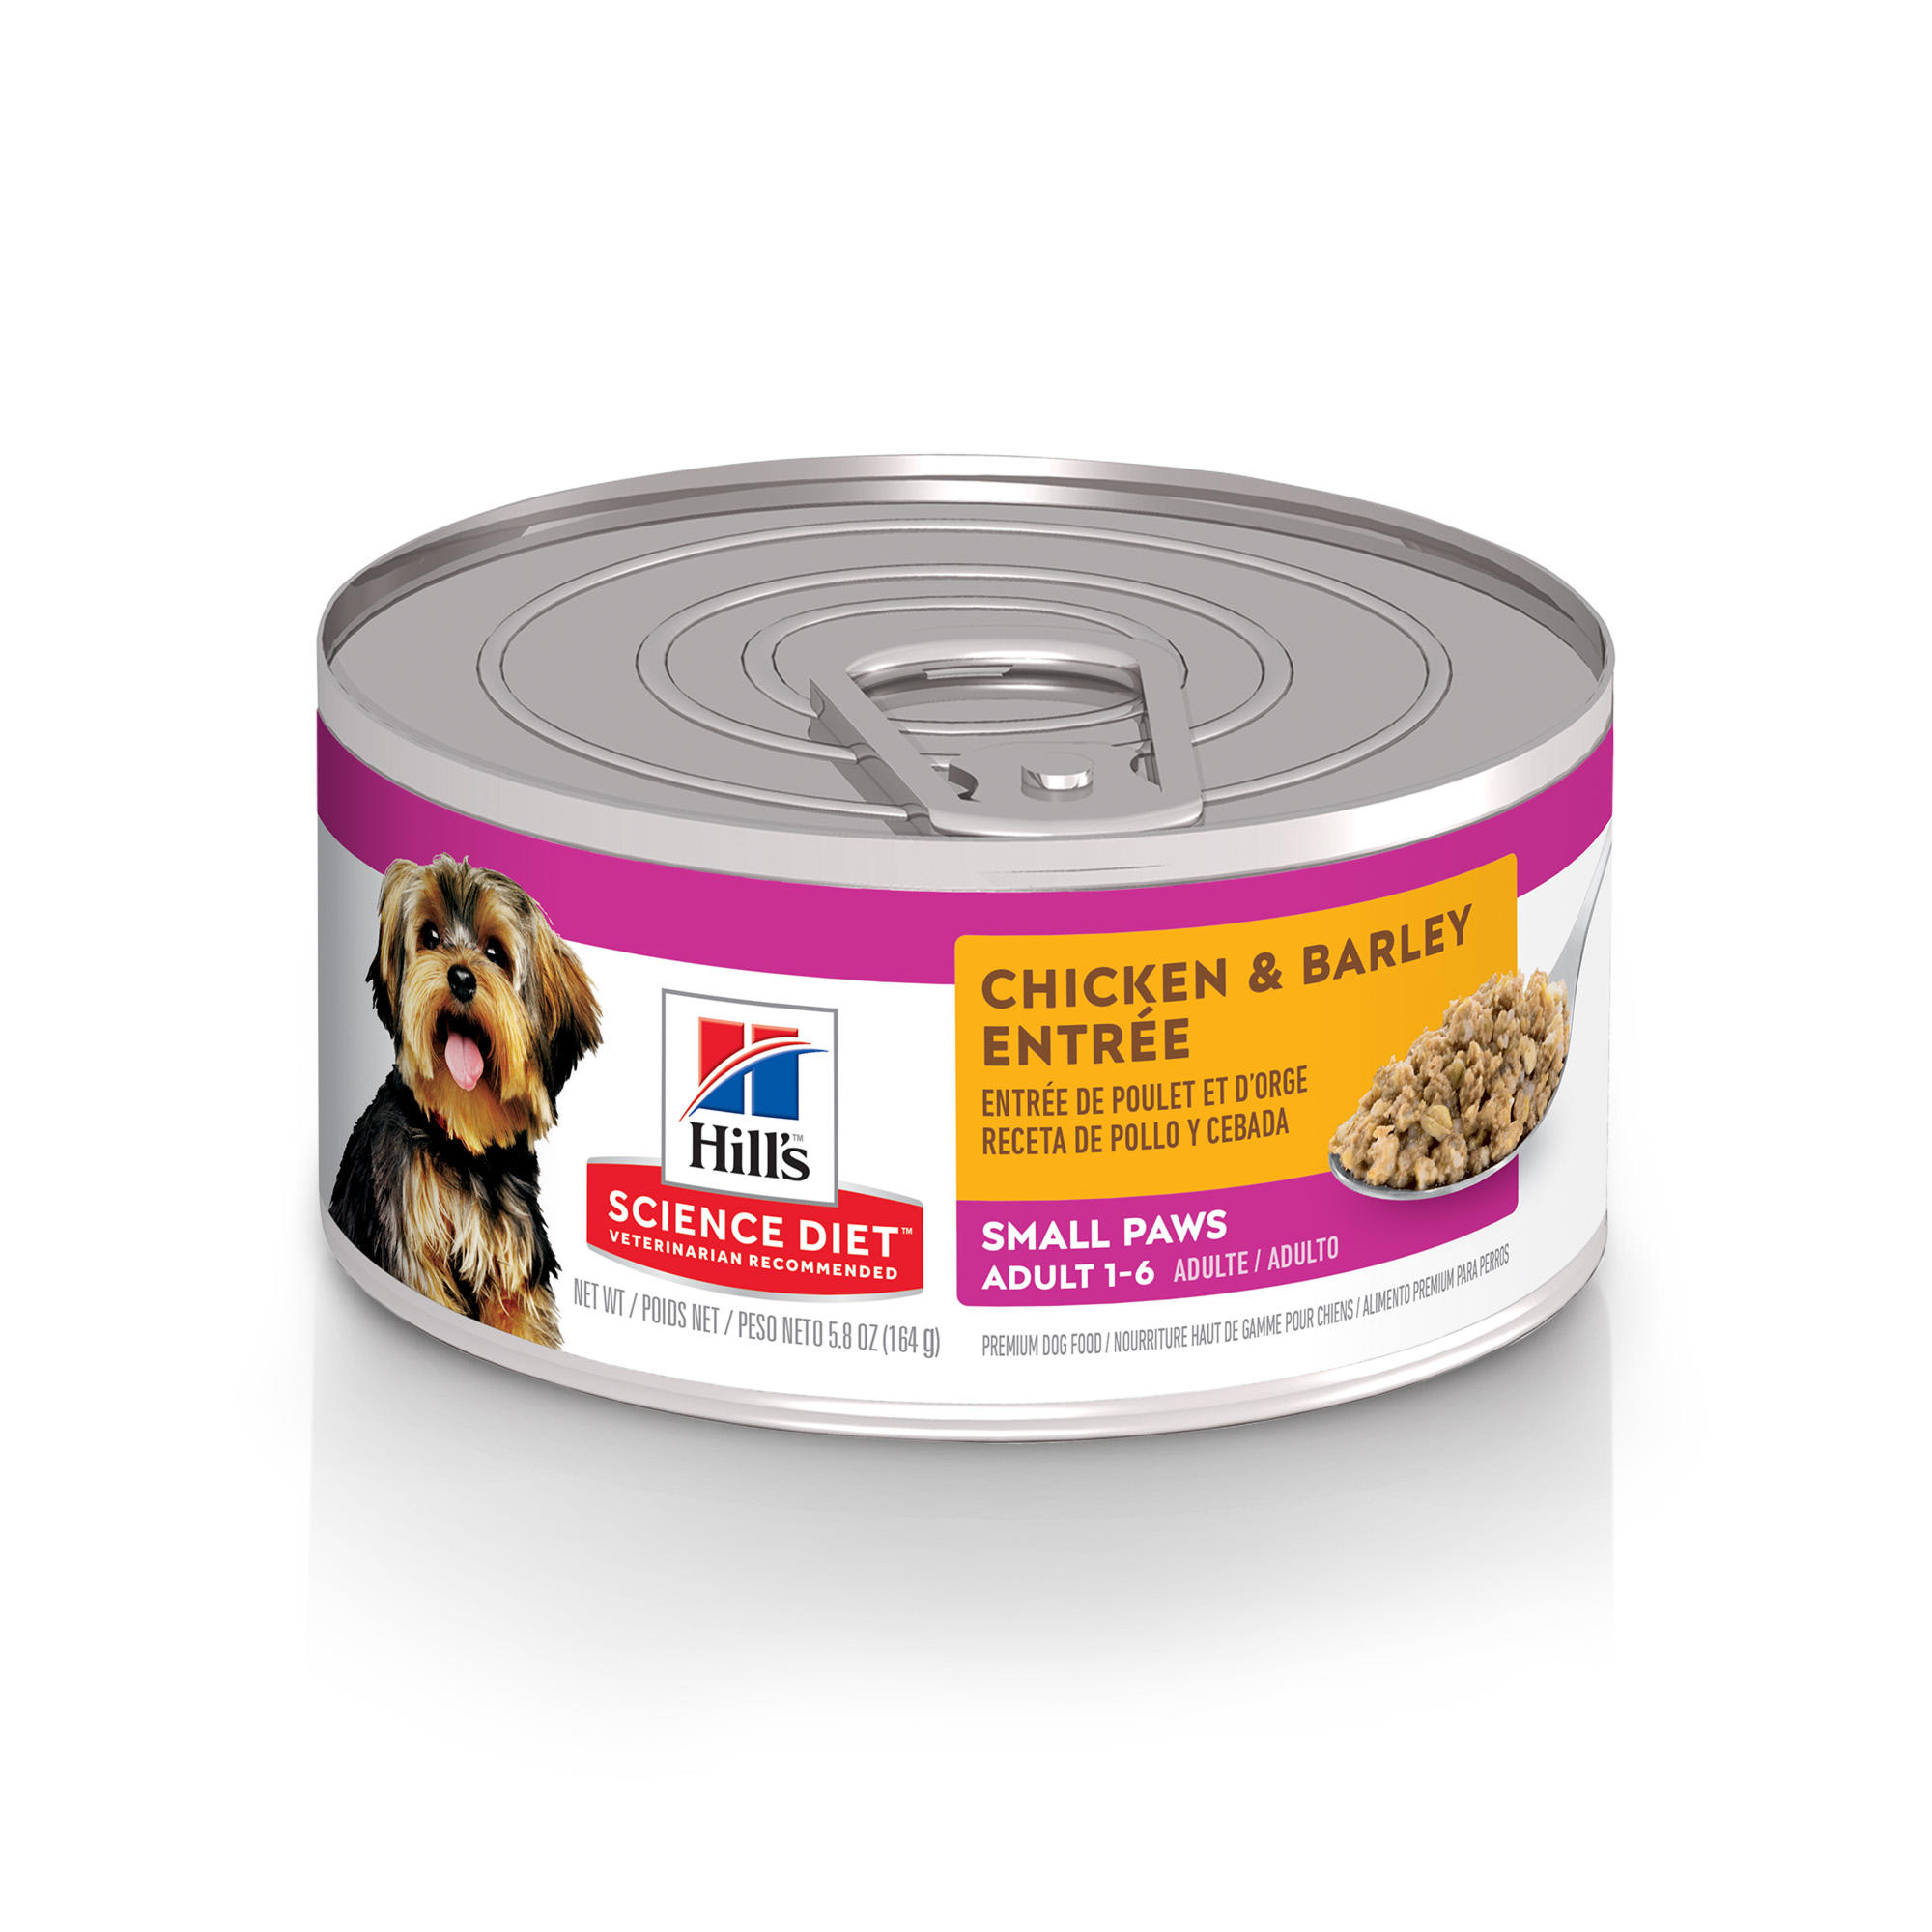 Hill's Science Diet Adult Small Paws Chicken & Barley Entree Canned Dog Food -  P5055746